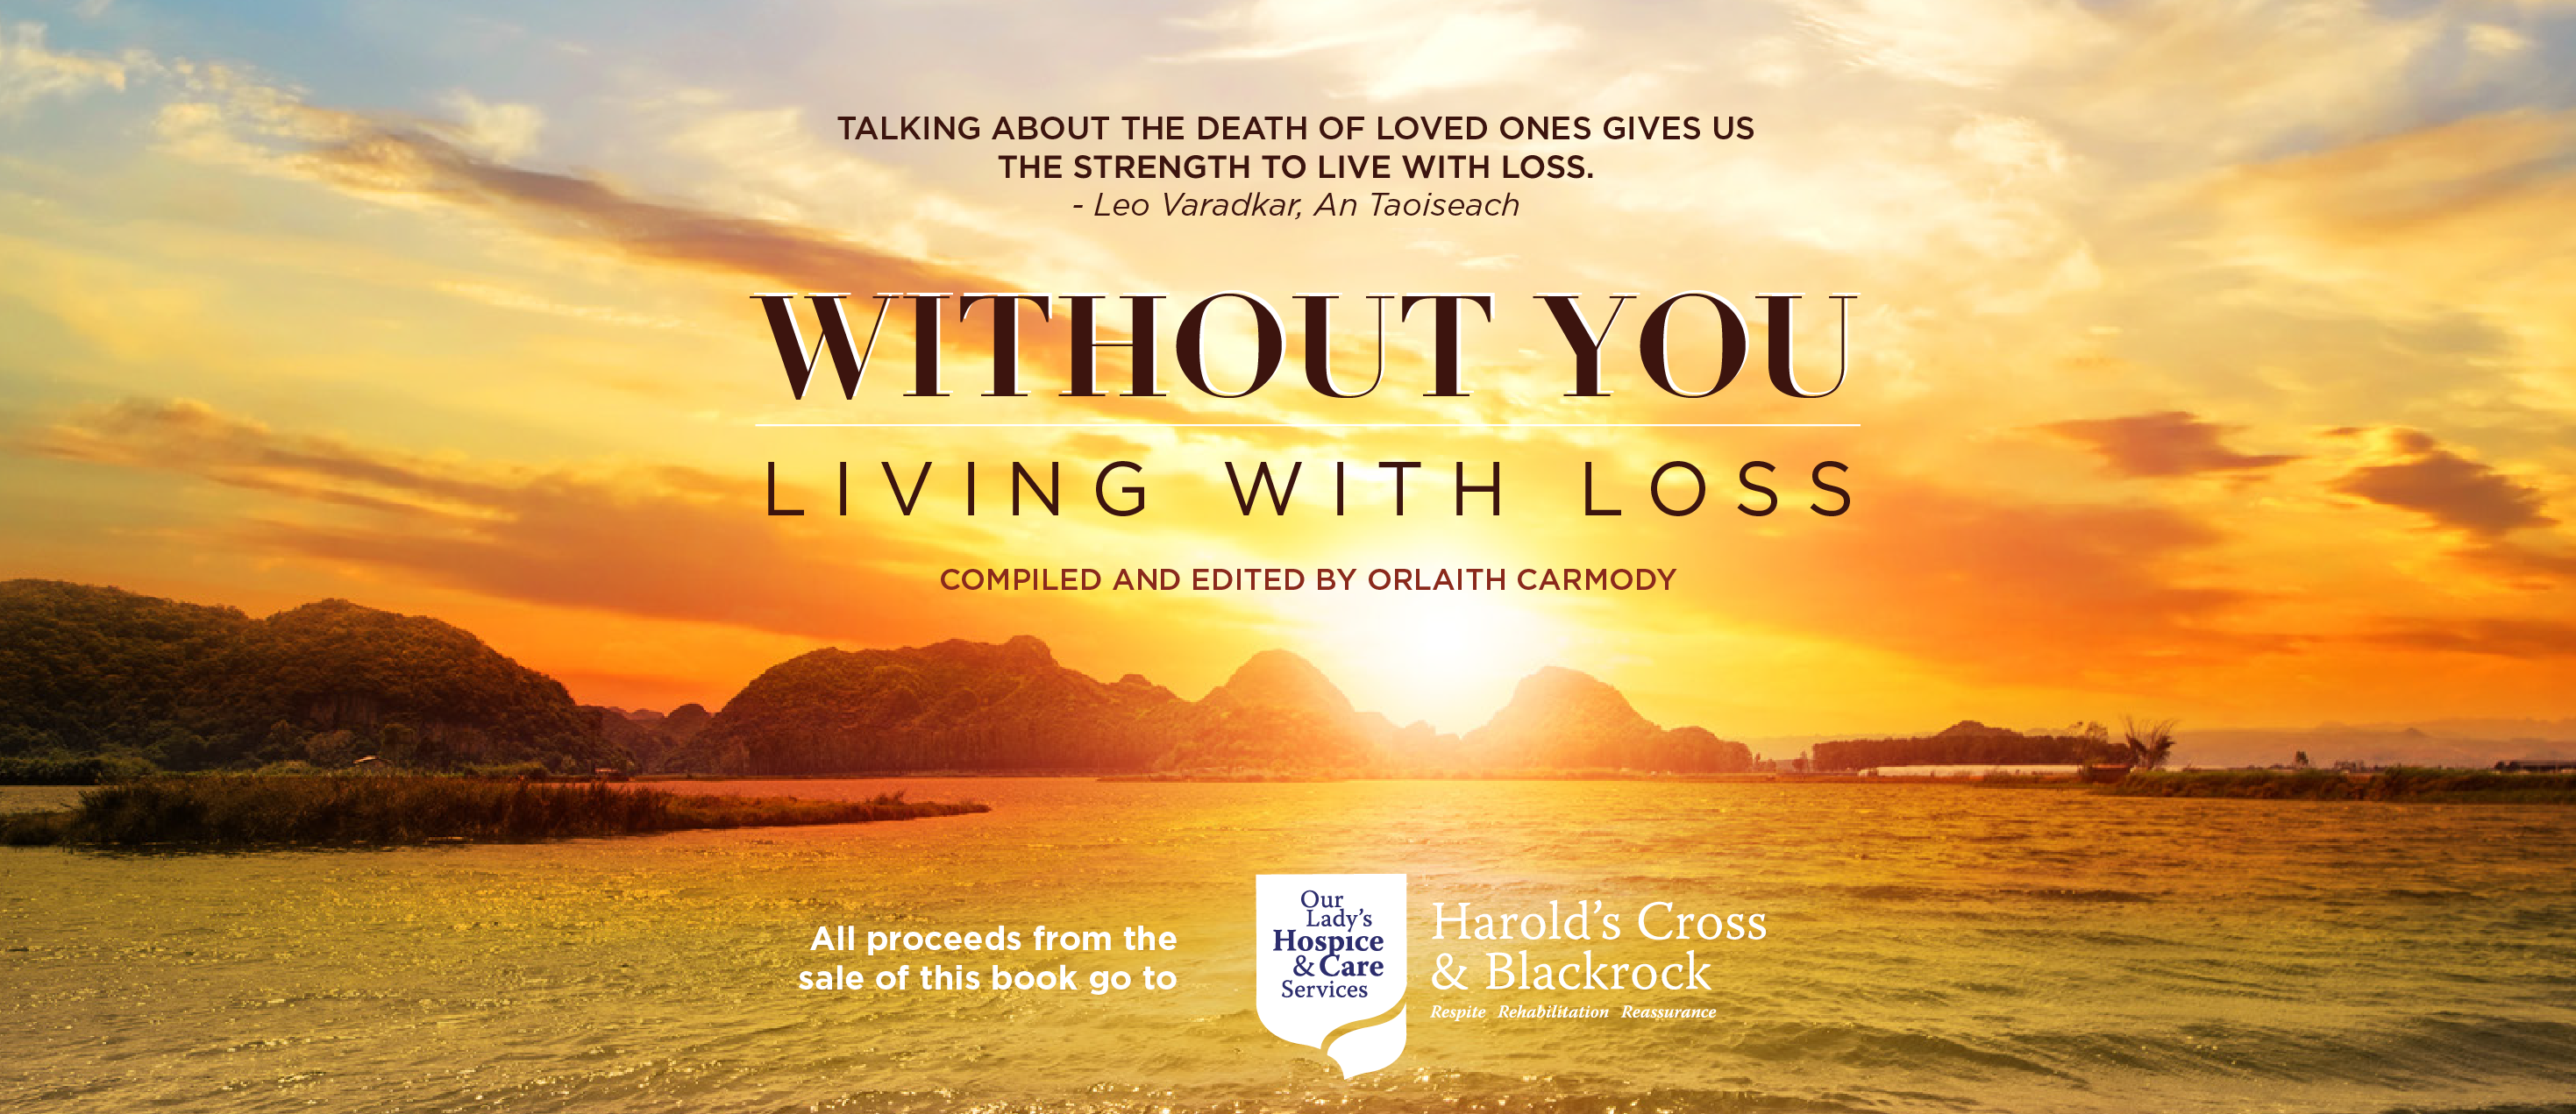 WithoutYou_Cover_WebsiteBanner_12.04.18-01